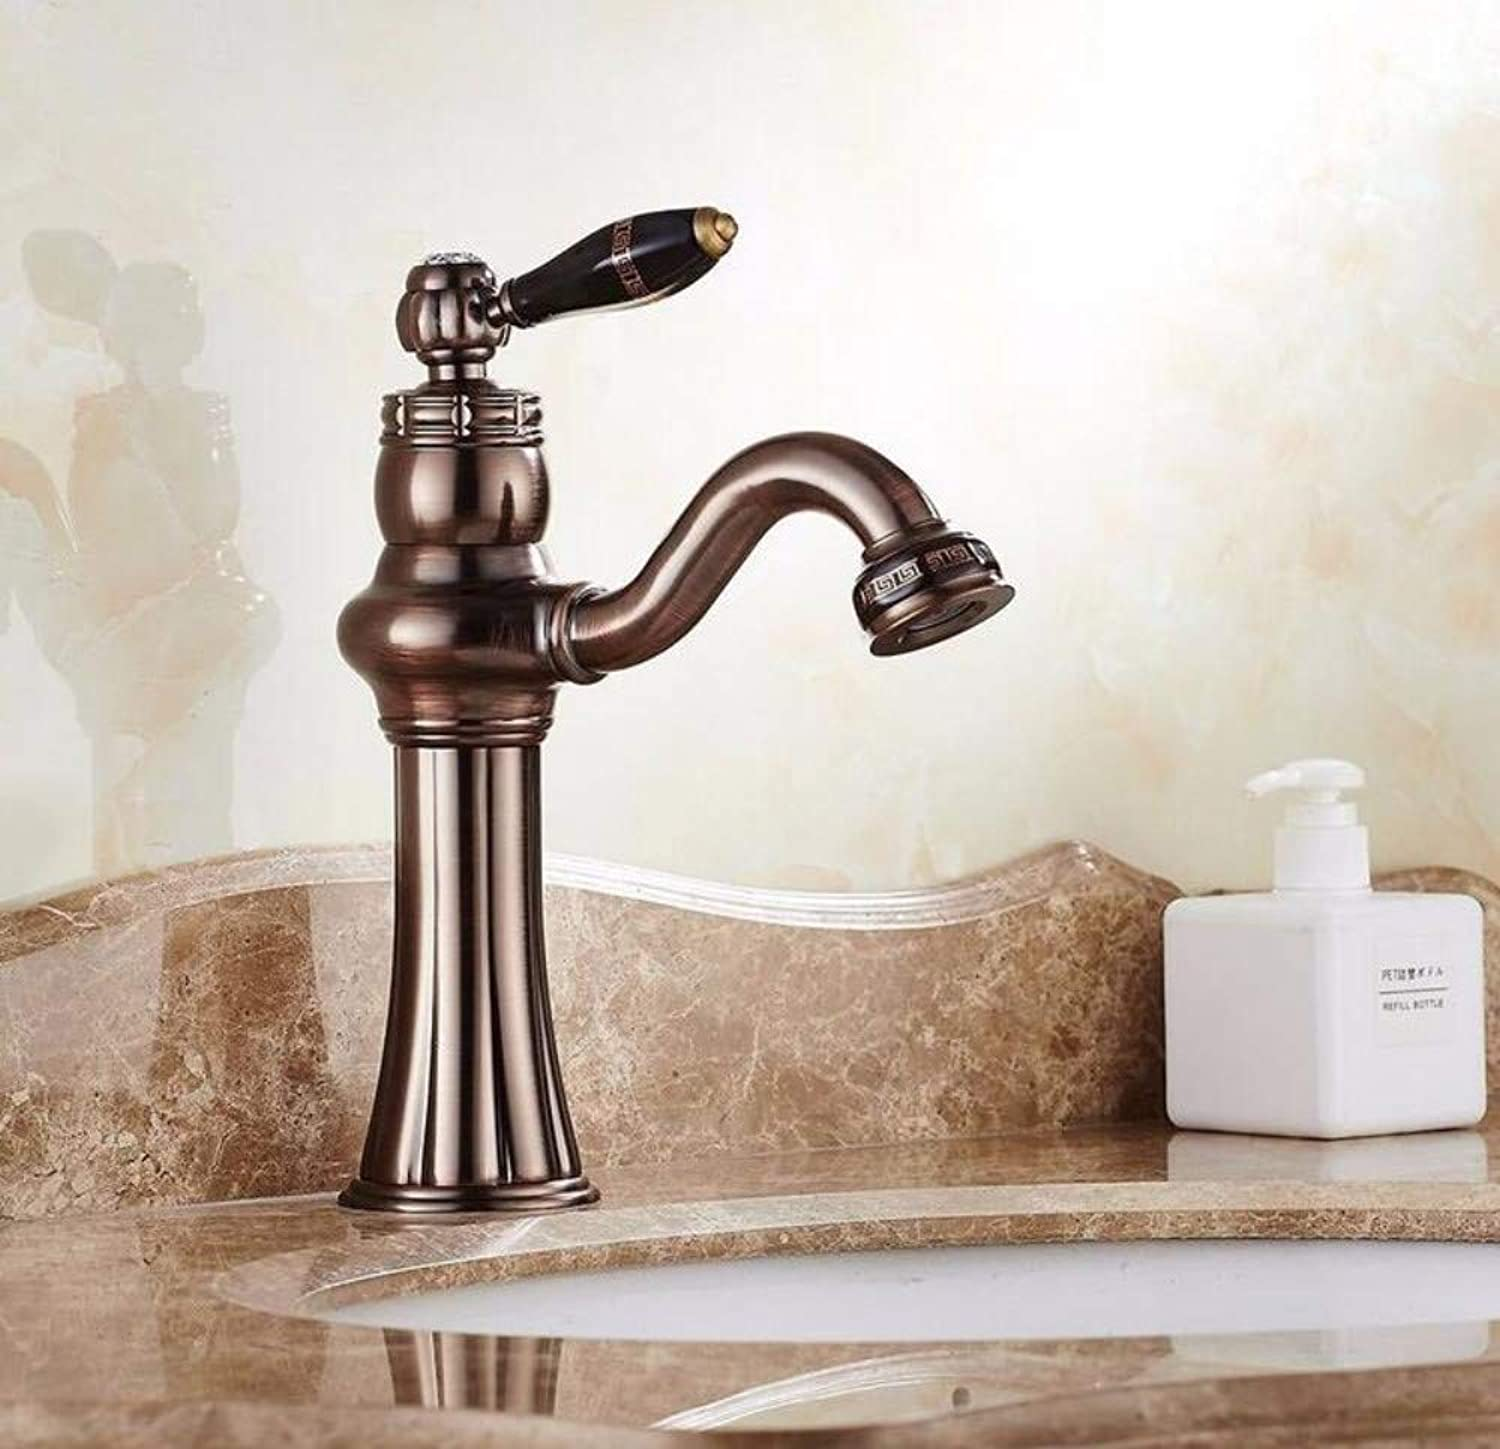 Modern Waterfall Copper Hot and Cold Kitchen Sink Taps Kitchen Faucet Modern Retro redary Faucet Single Hole